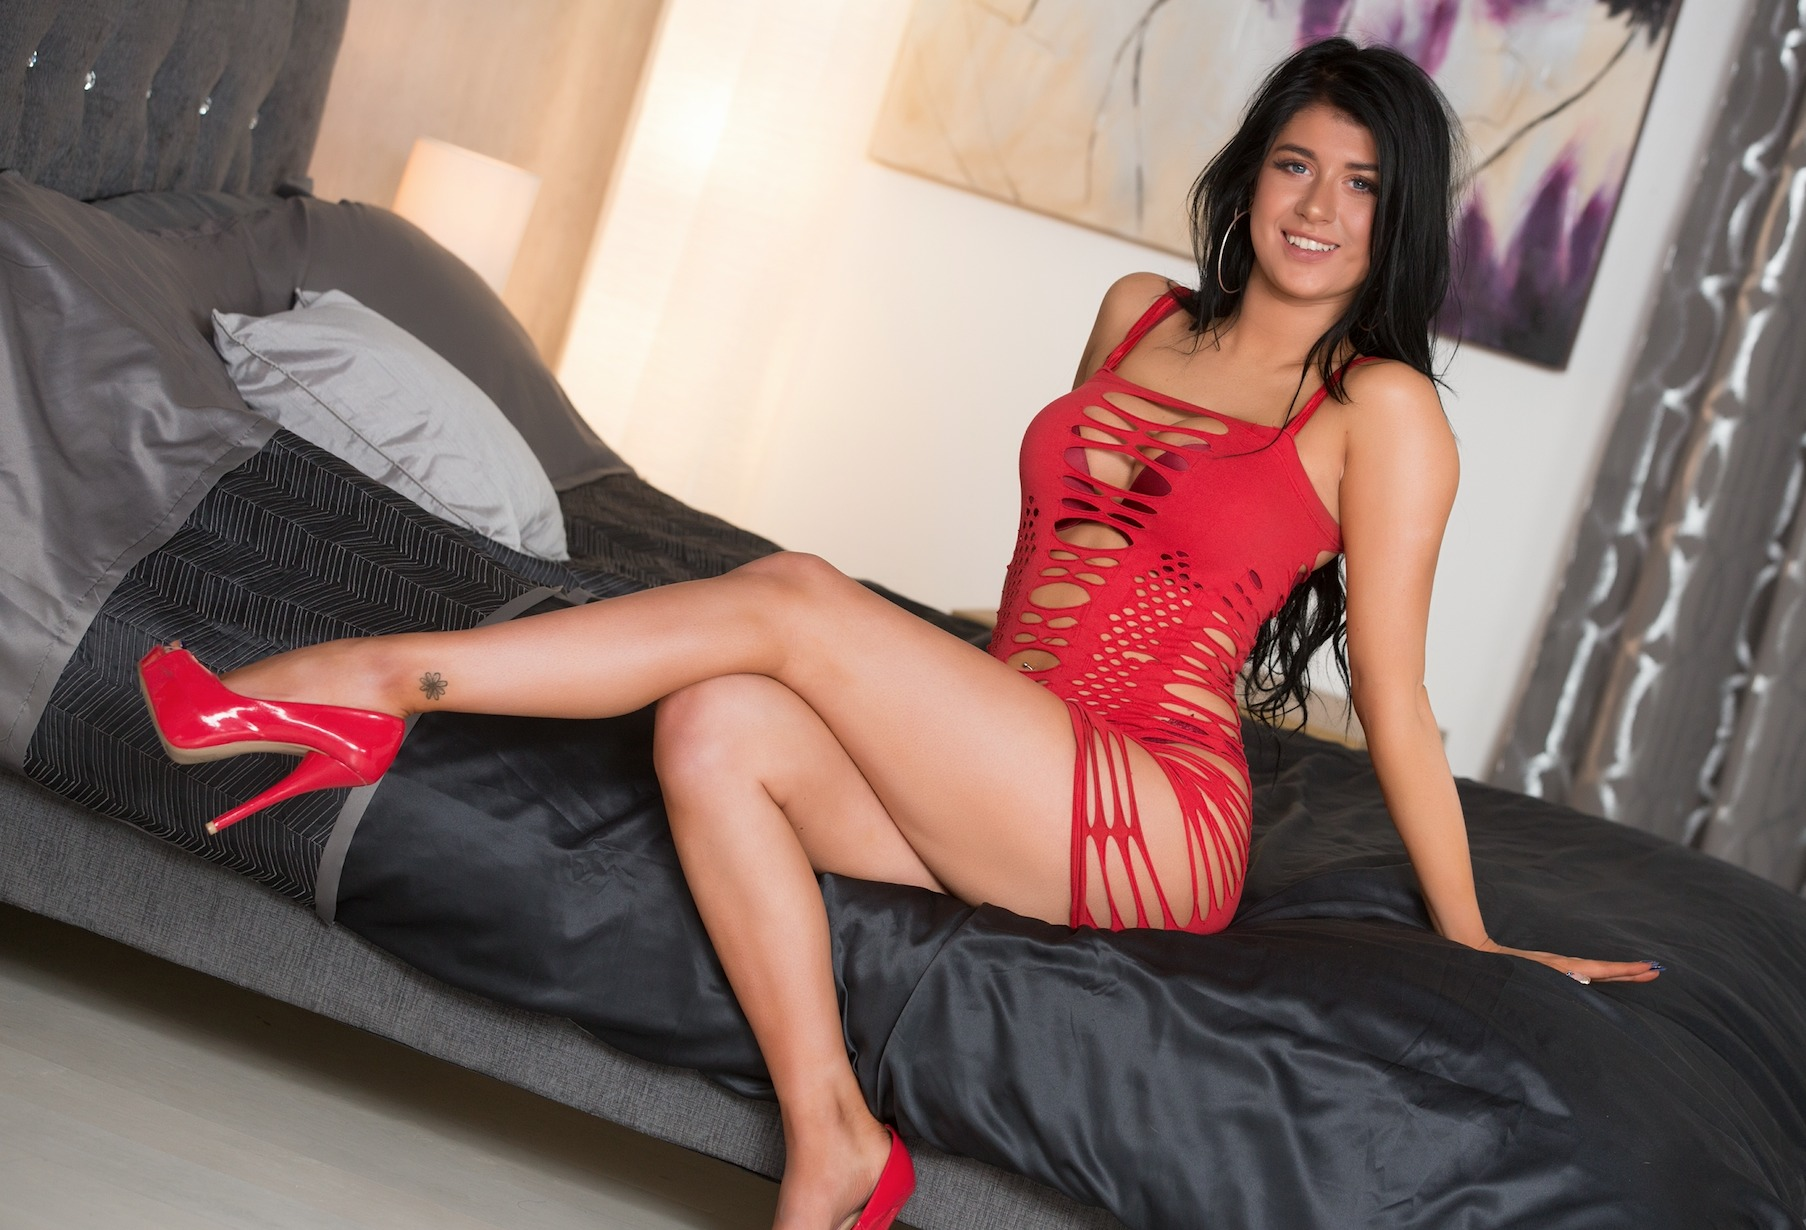 Atlanta brunette sitting on the bed legs crossed in red heels and a red lingerie dress looking seductively with a smile